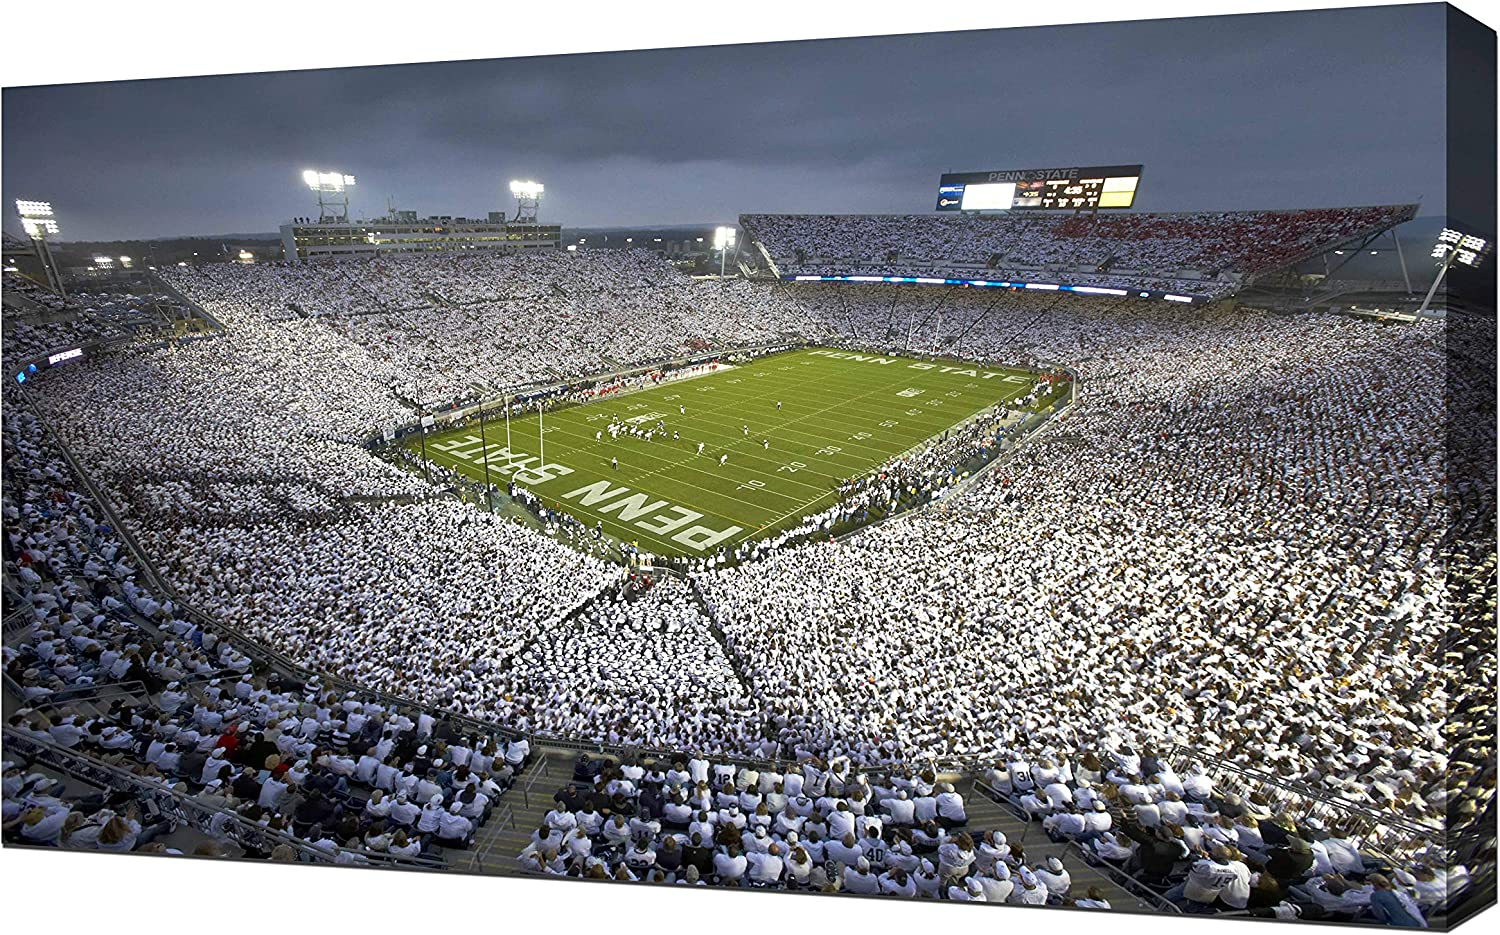 Penn State Football White Out Beaver Stadium - Canvas Art Print Picture